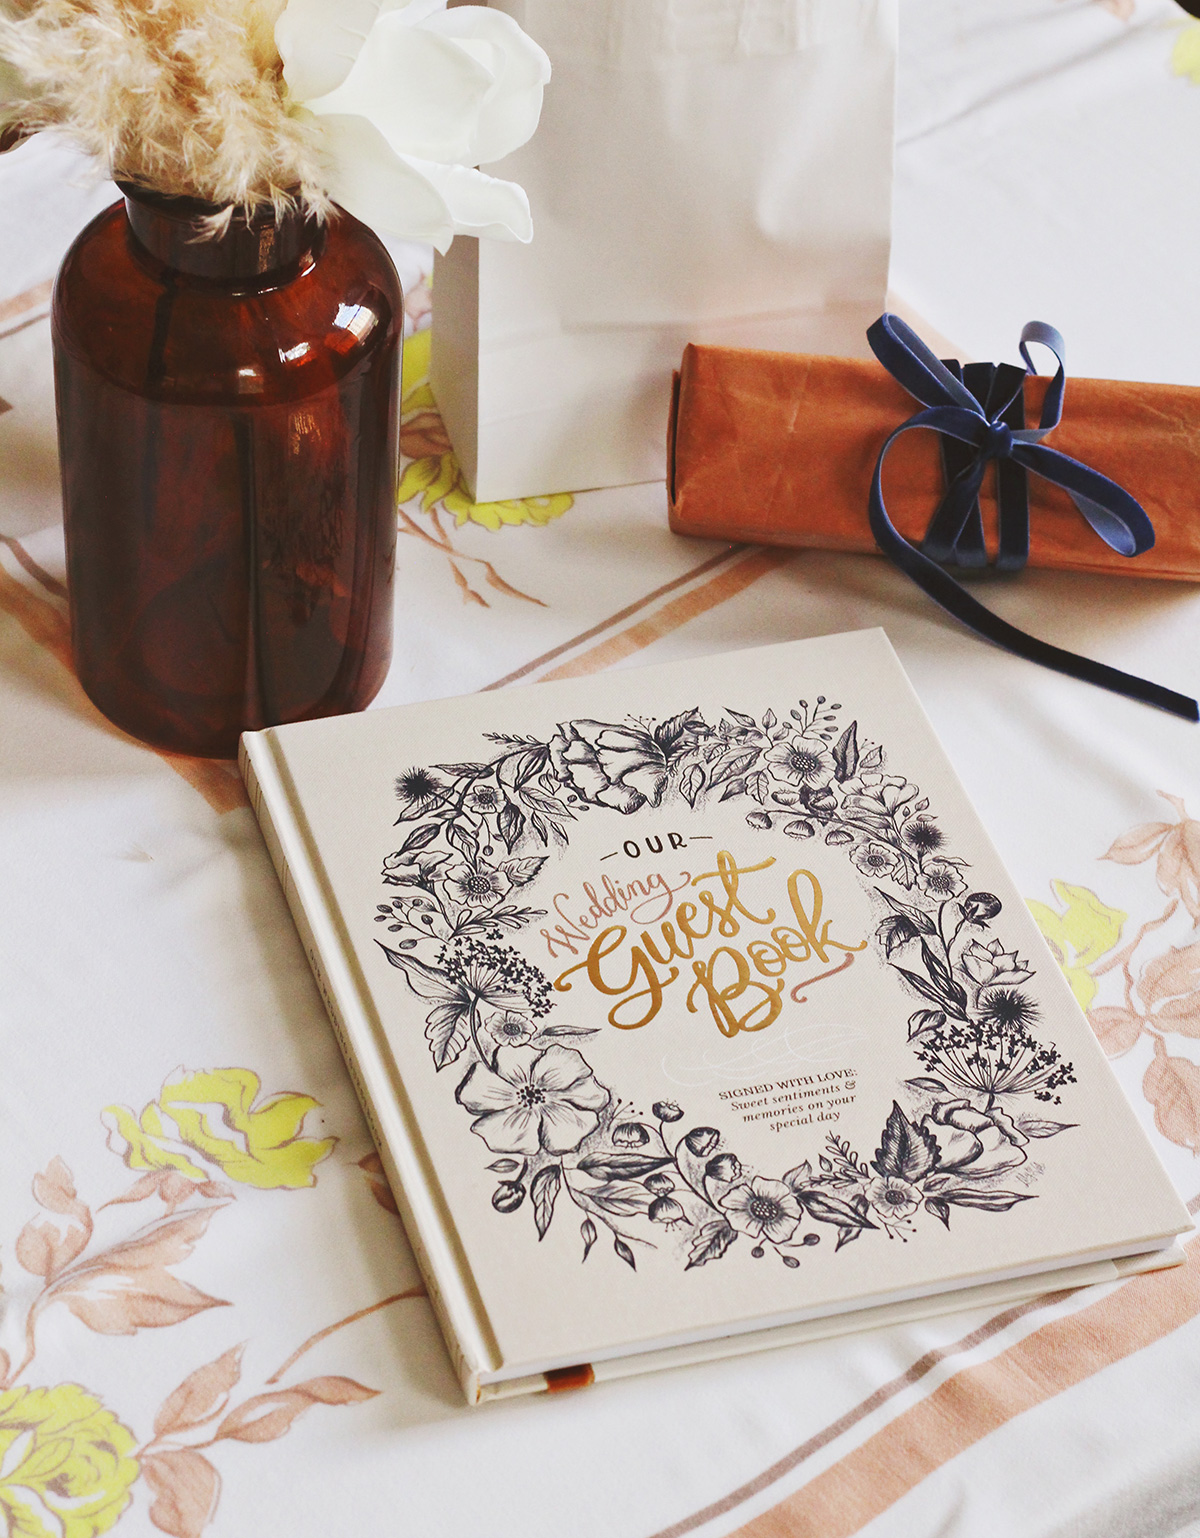 The Lily & Val Wedding Guestbook is a sentimental take on the traditional guestbook.